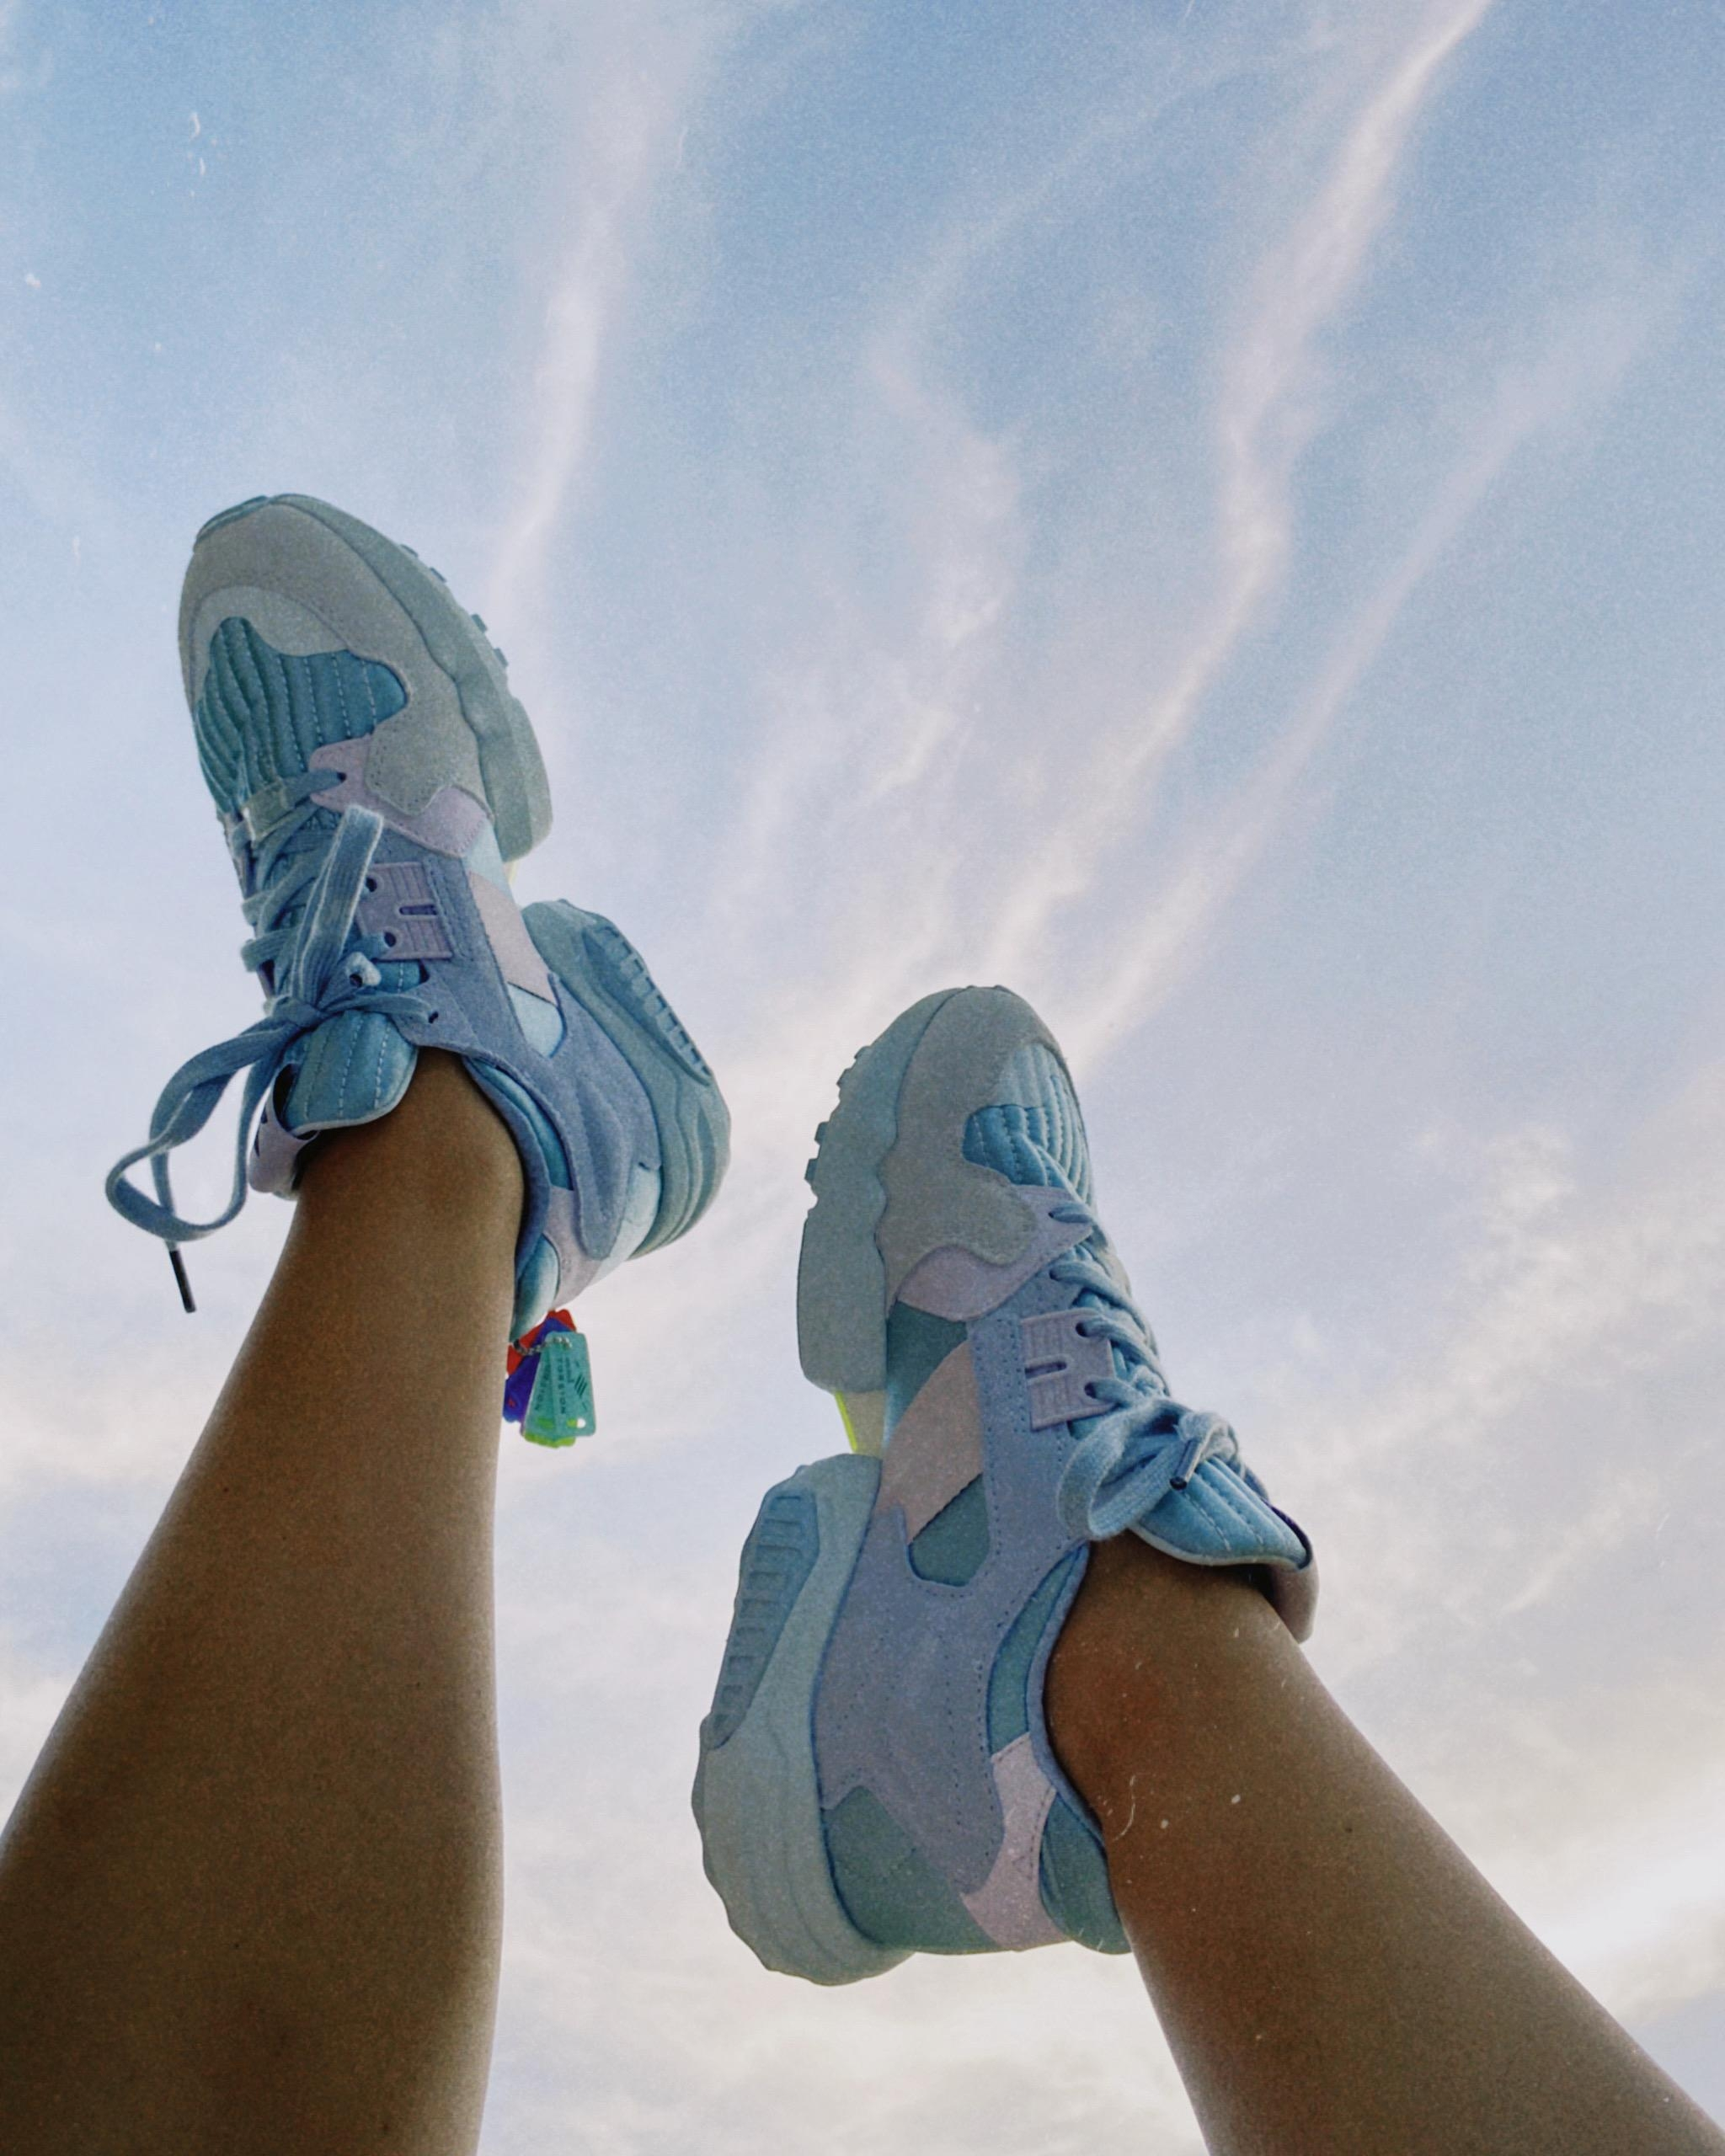 I'm walking on sunshine and clouds. ☁️ #sneaker #sneakerlove #schuhe #ootd